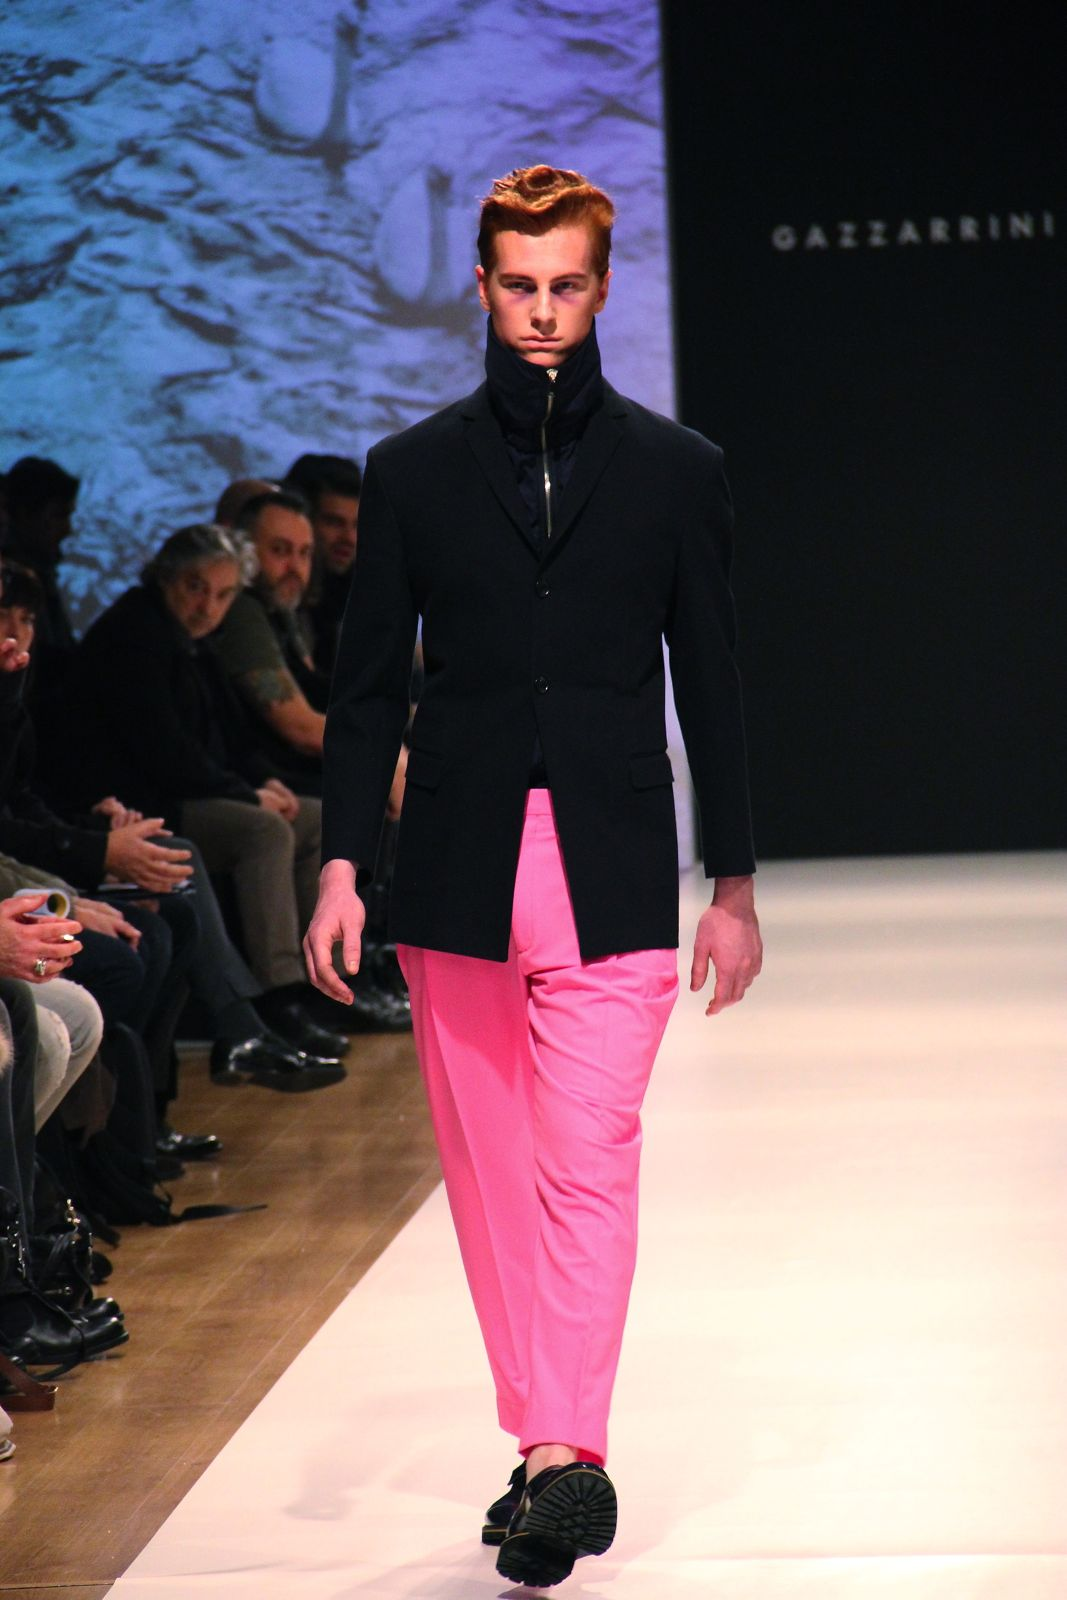 Gazzarrini Men's Collection Fall Winter 2012-2013 Milano Fashion Week